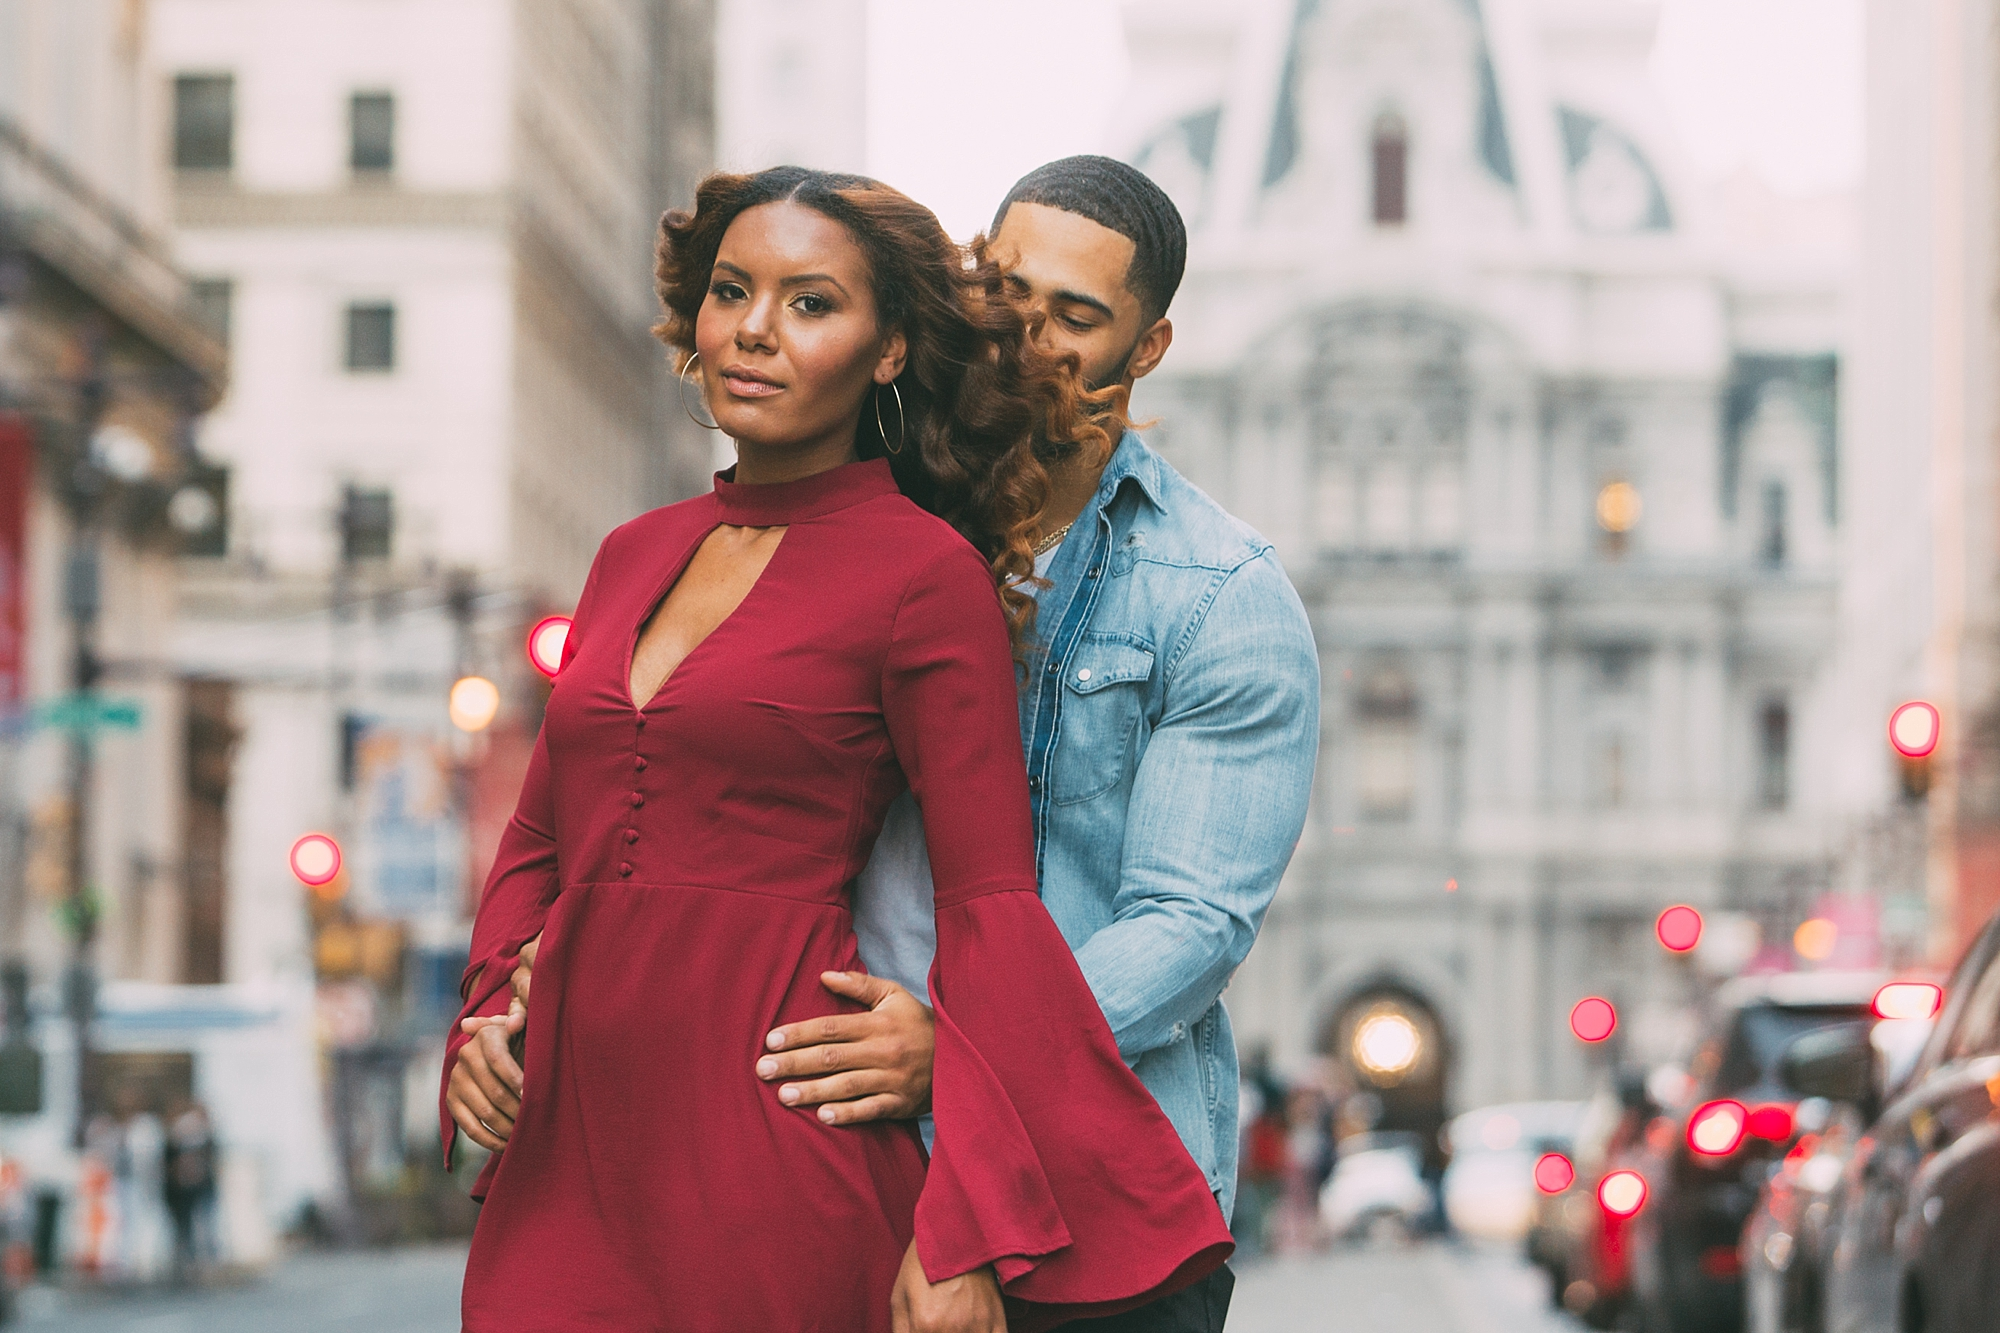 Joe_Mac_Creative_Wedding_Engagements_Photography_Philadelphia_Broad_Street_Proposal_0038.jpg